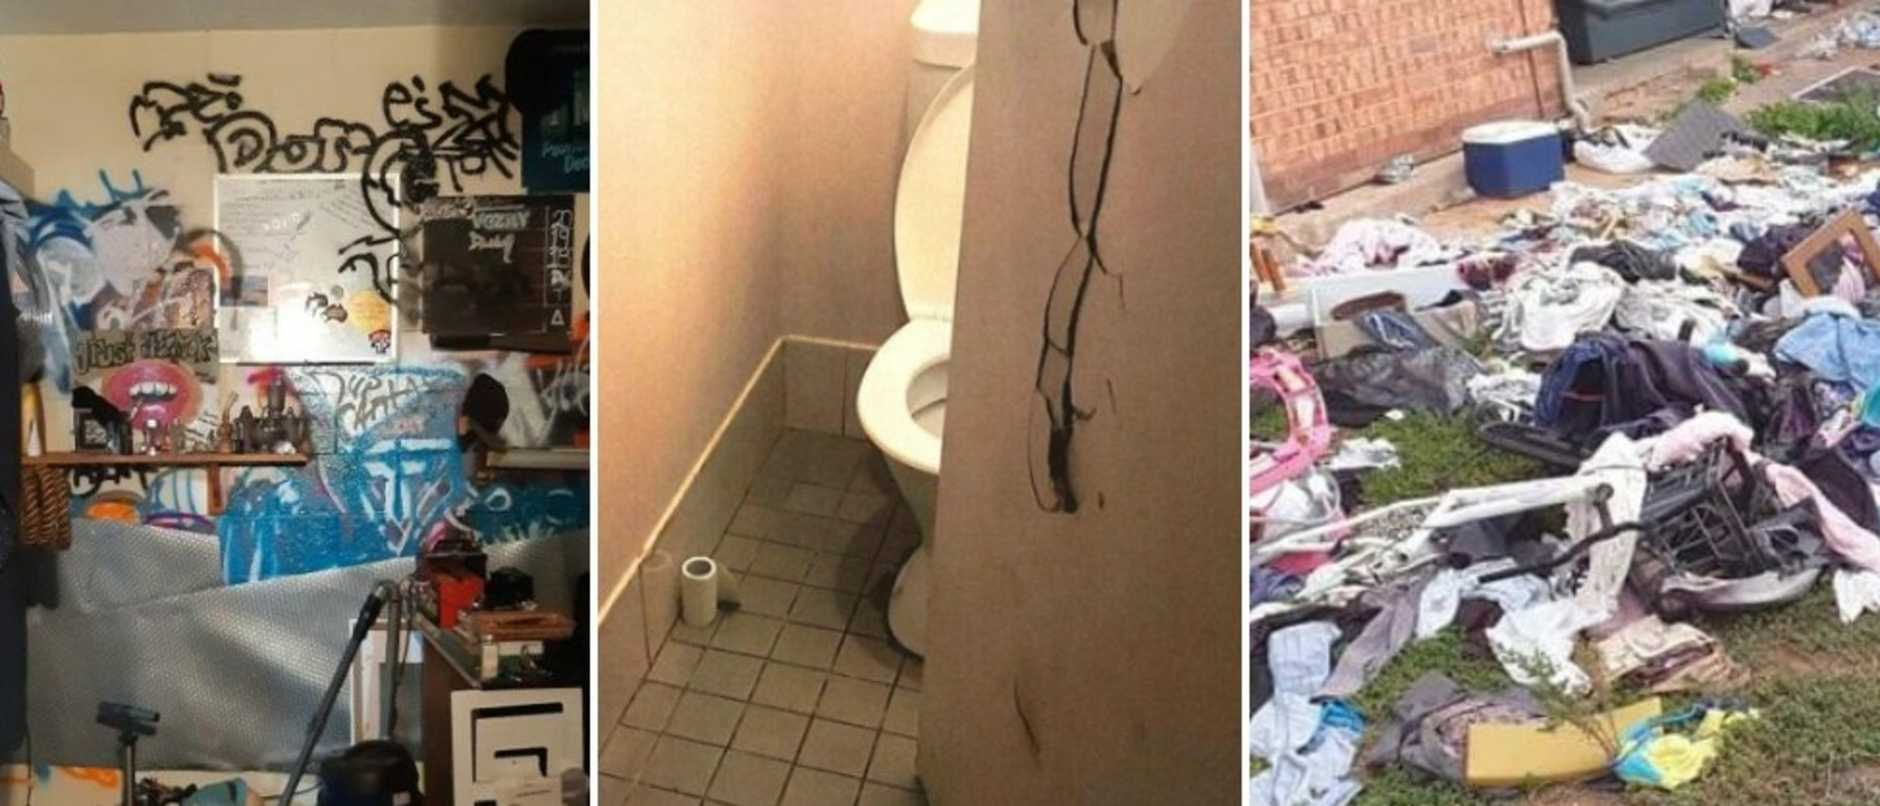 Images show homes strewn with rubbish, graffitied and doors smashed, as new figures show the number of evictions has doubled.